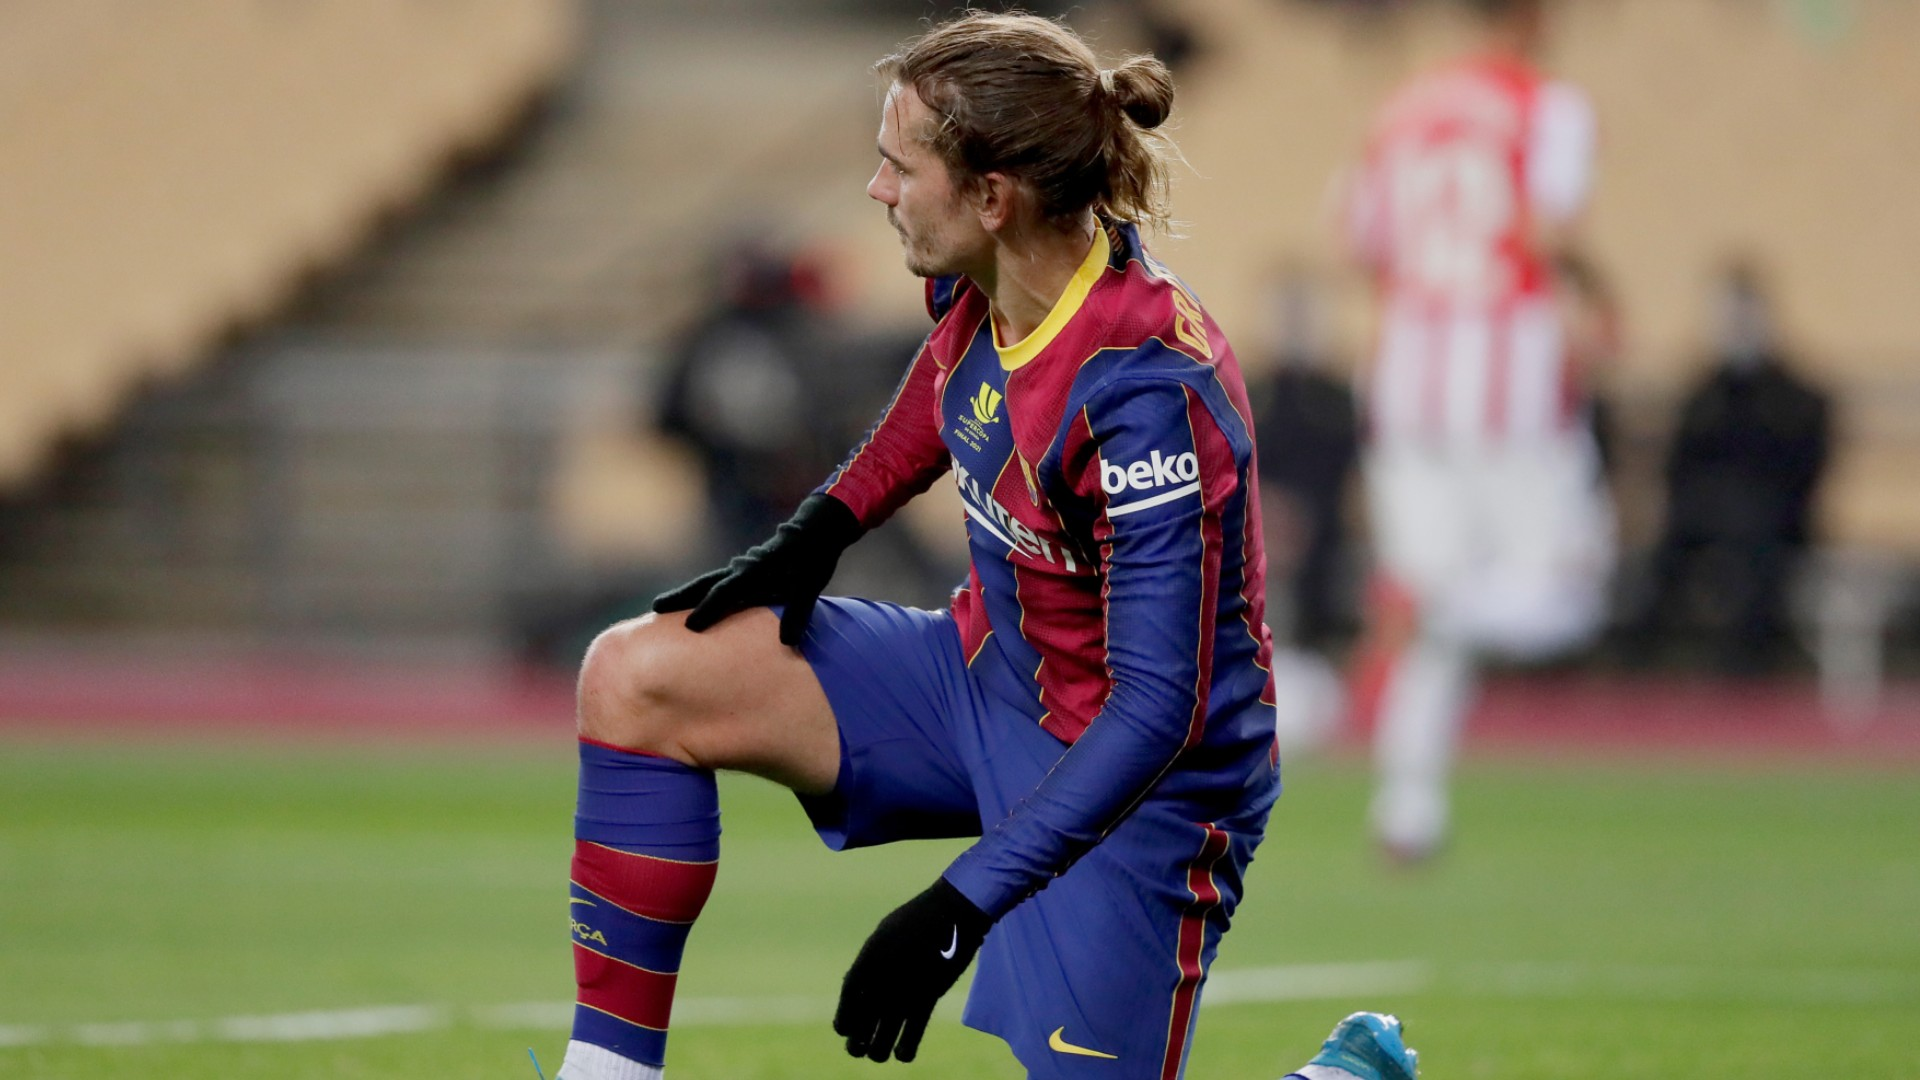 'We're screwed, angry, upset' – Griezmann snaps back after Barca fall in Supercopa final